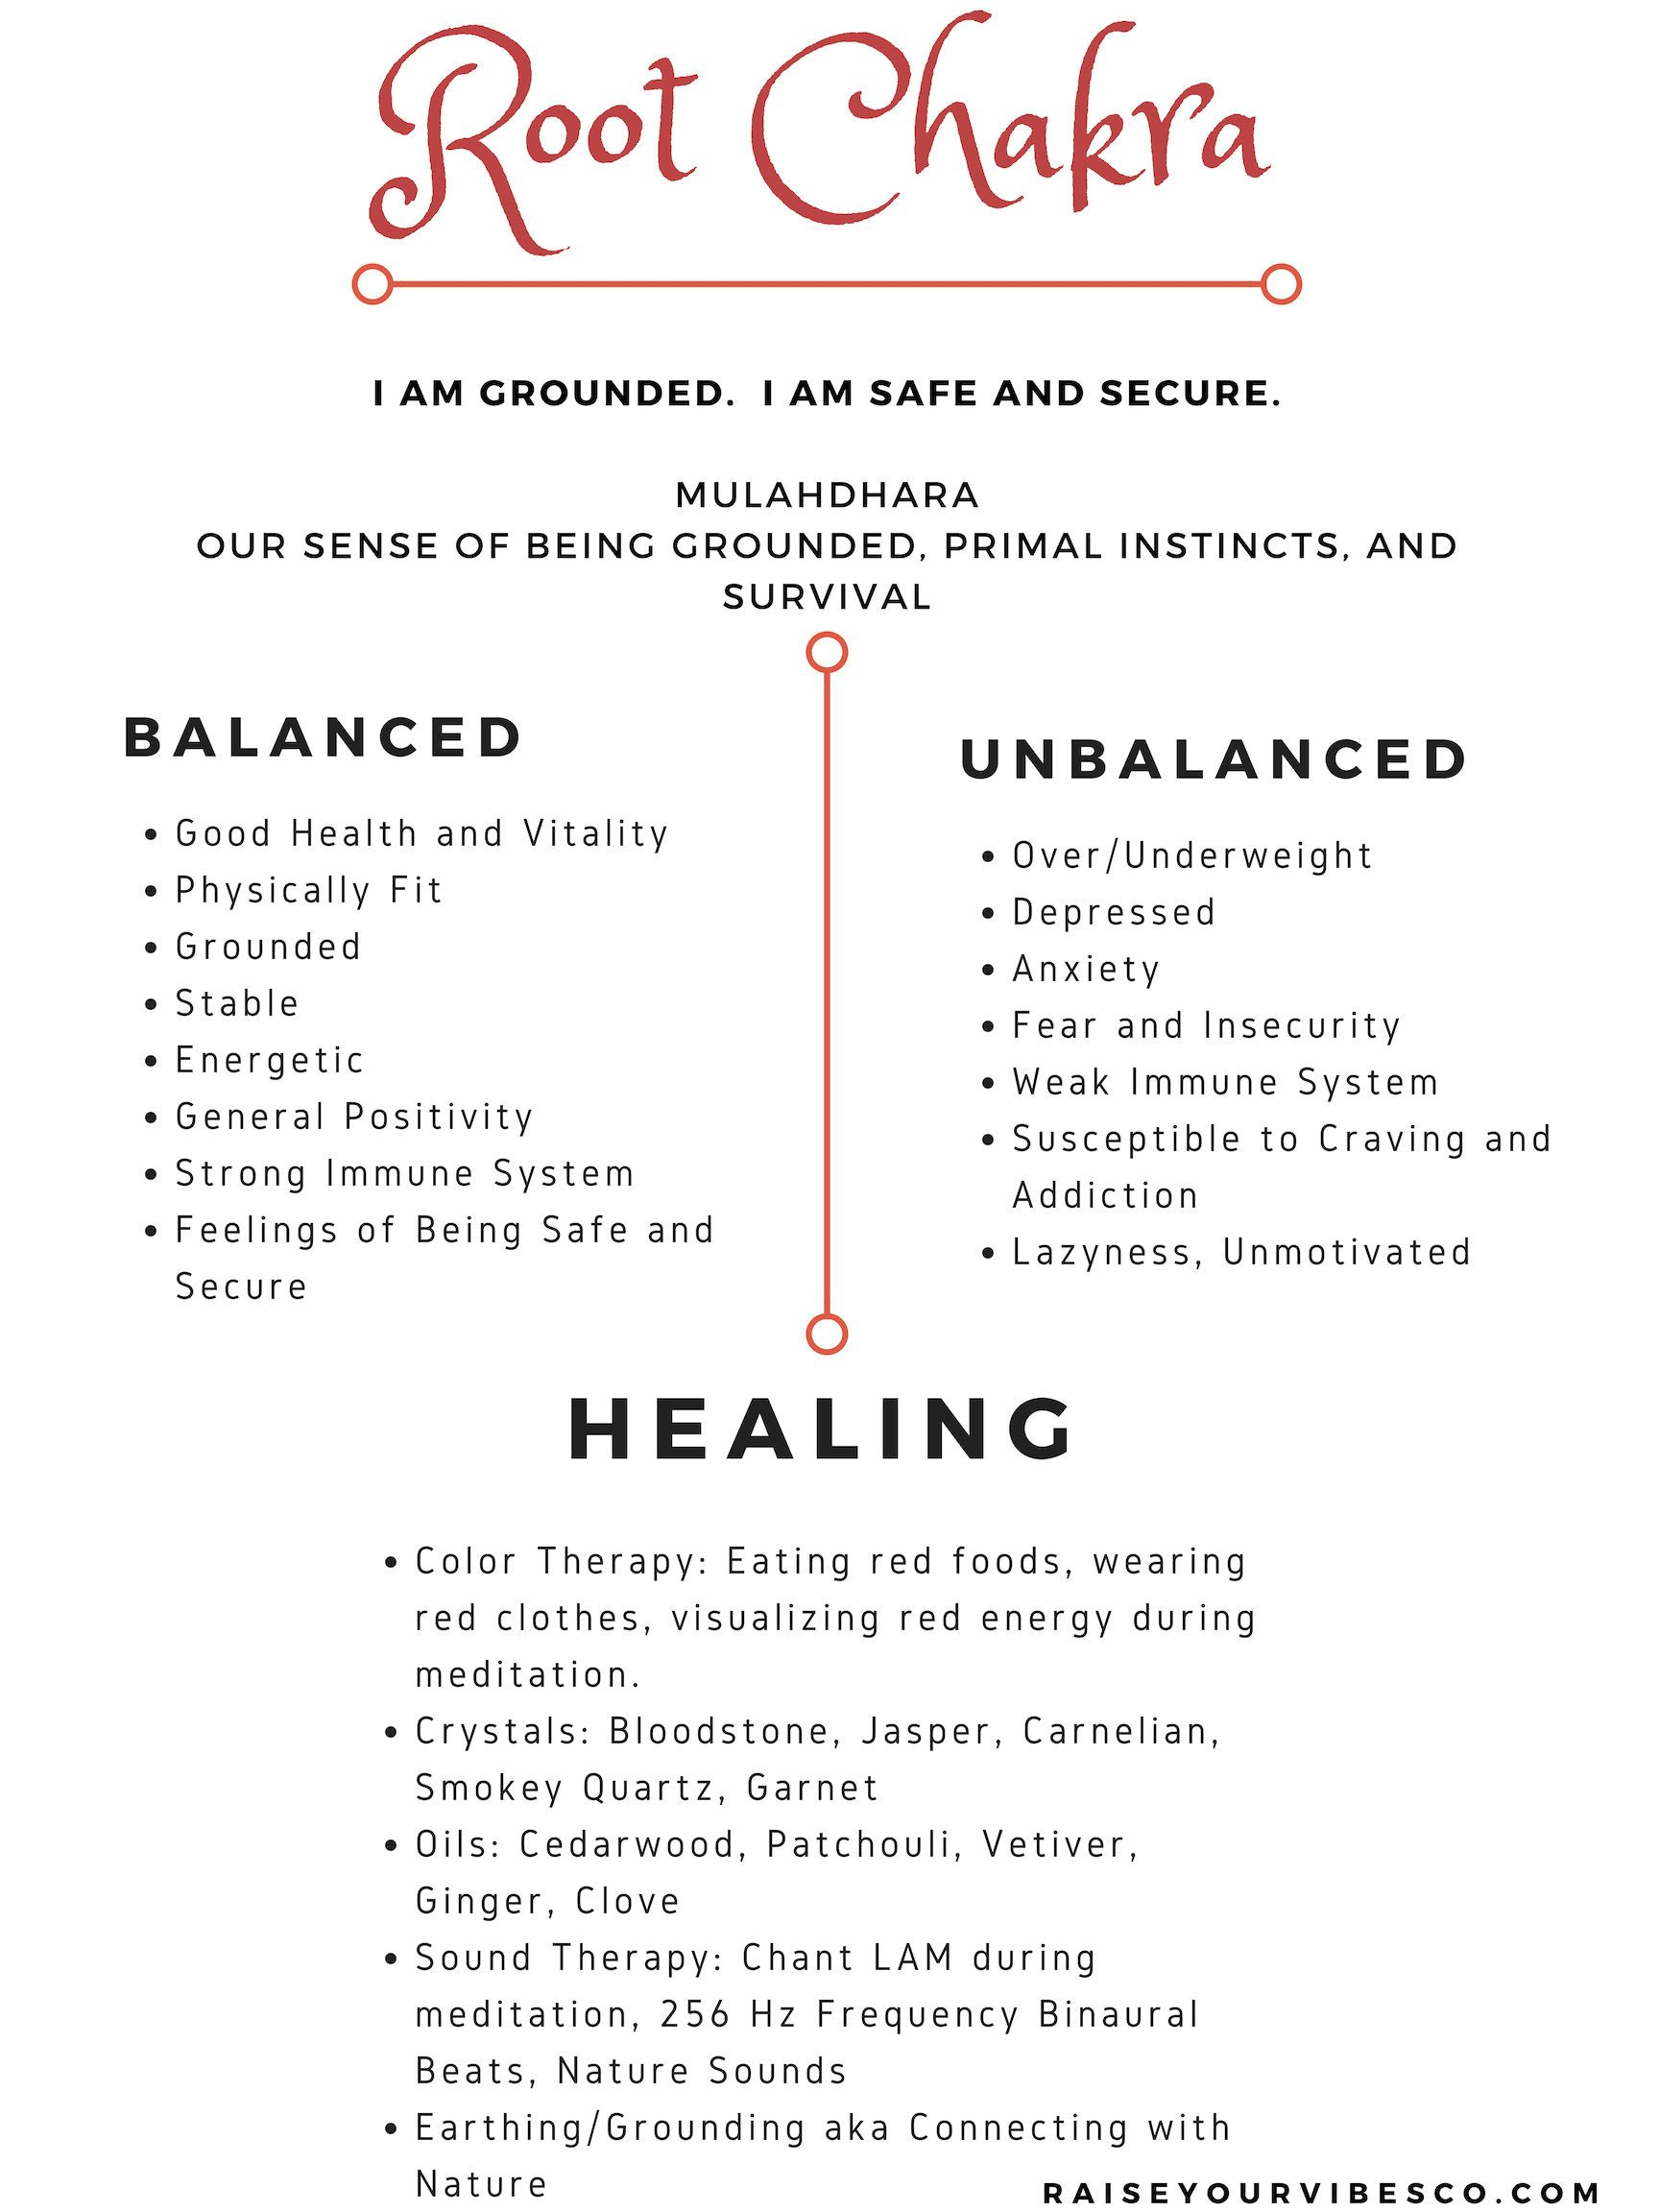 Root Chakra Healing Amp Self Care